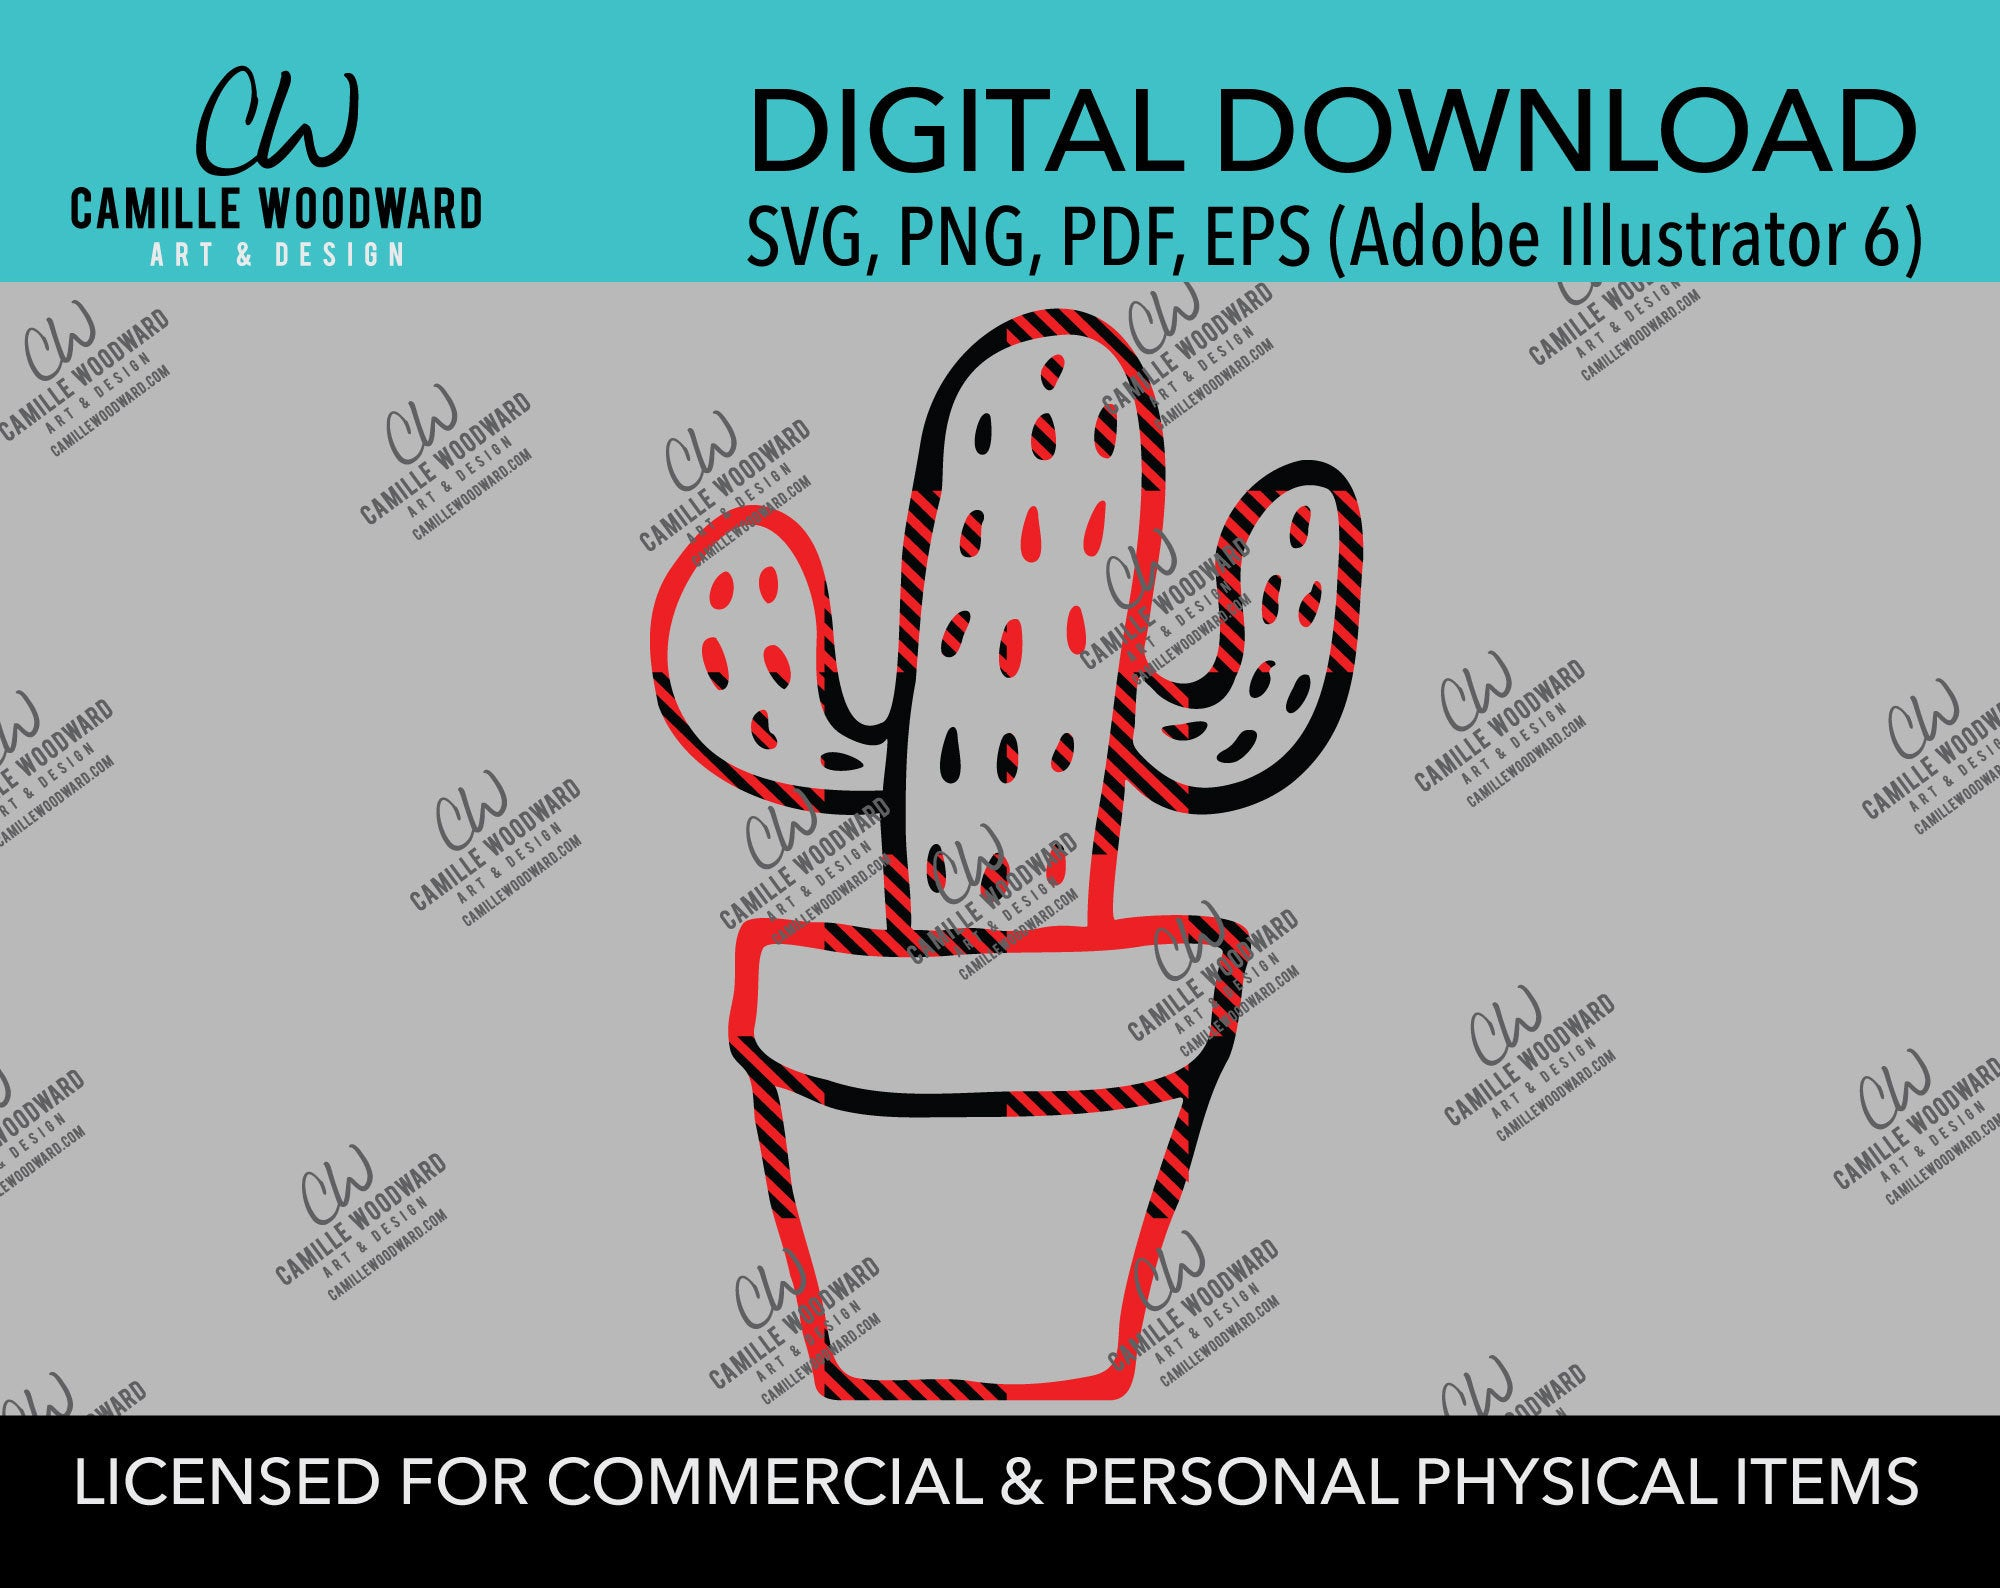 Buffalo Plaid Cactus Red Black Plaid Outline, SVG, EPS, PNG - Sublimation Digital Download Transparent